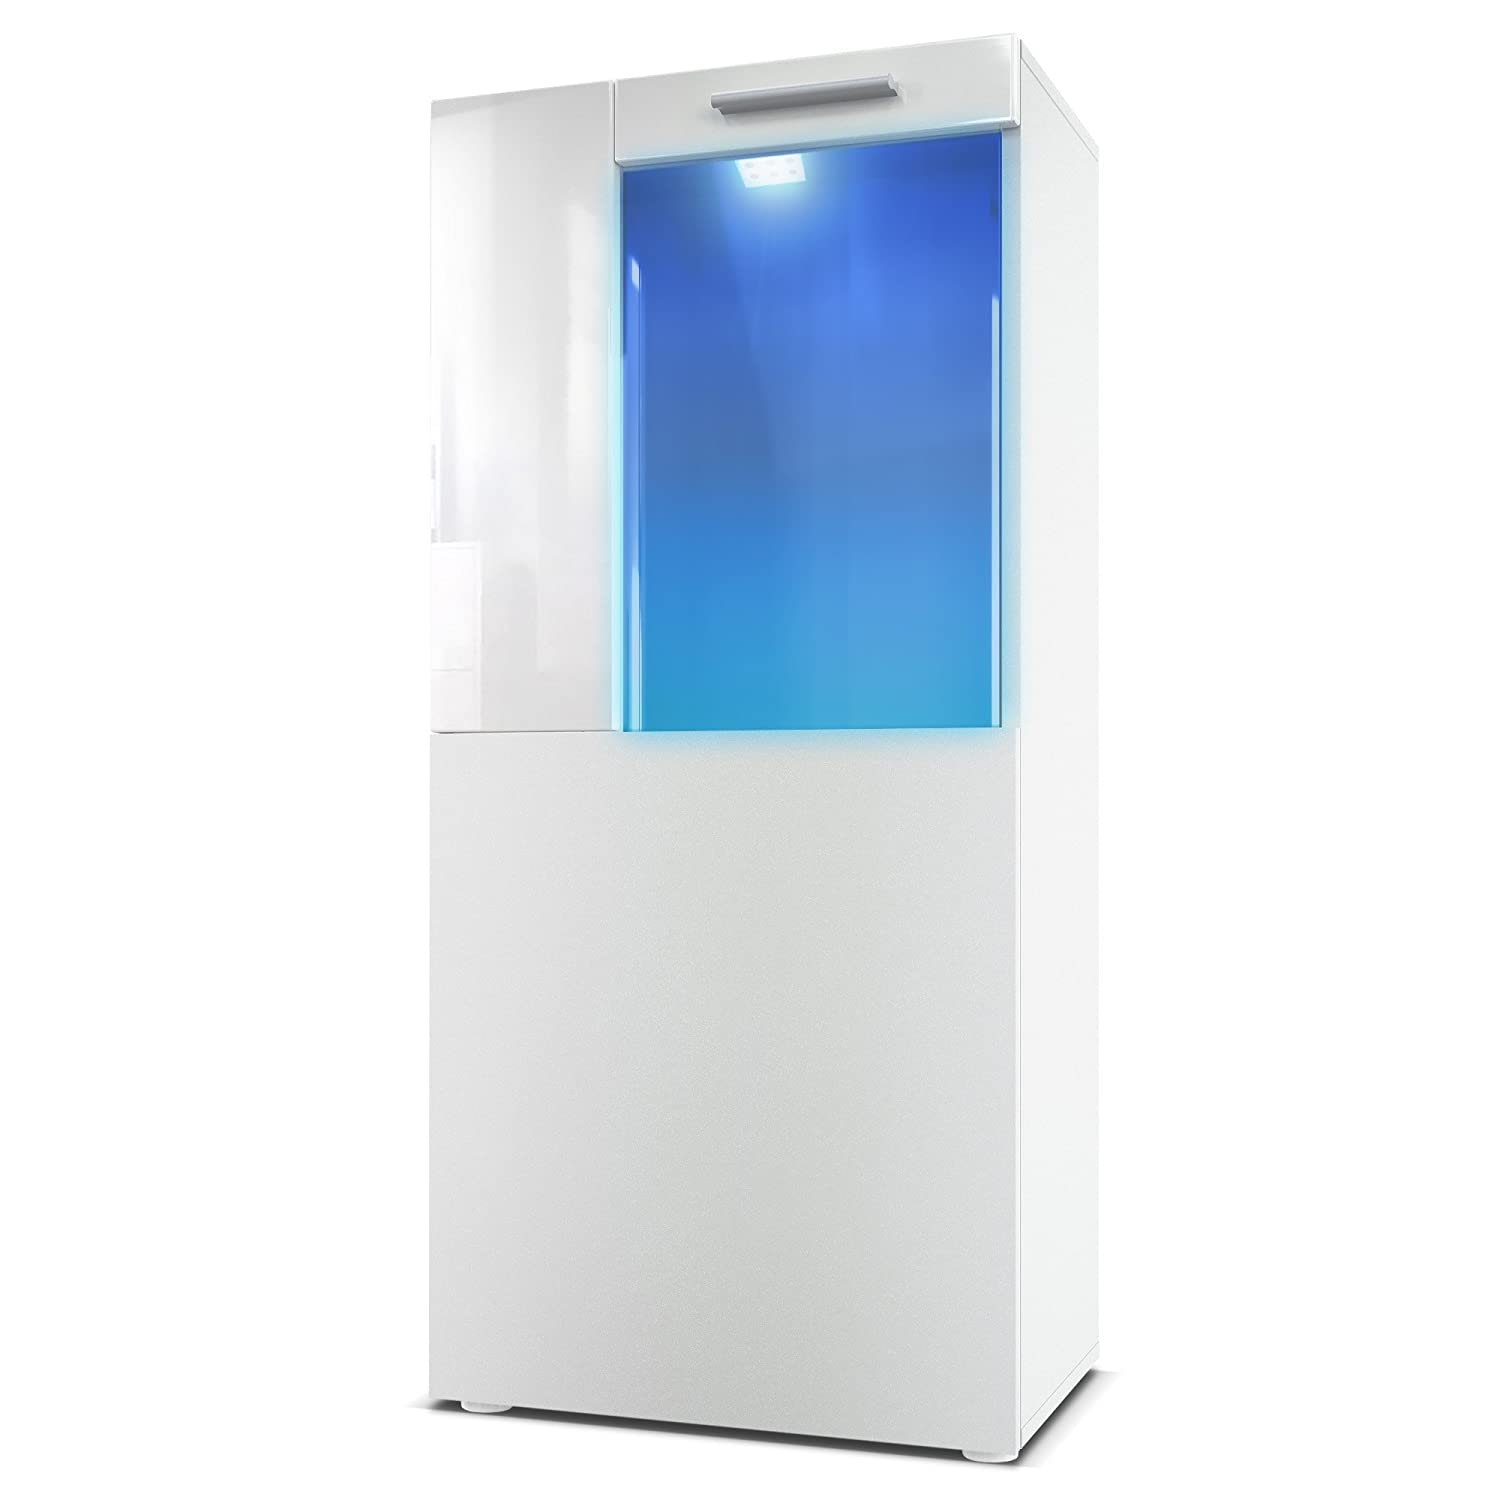 Tall Display Cabinet Cupboard Movie, Carcass in White matt / Front in White matt with Offsets in White High Gloss with LED lights in Blue [Energy Class A] Vladon